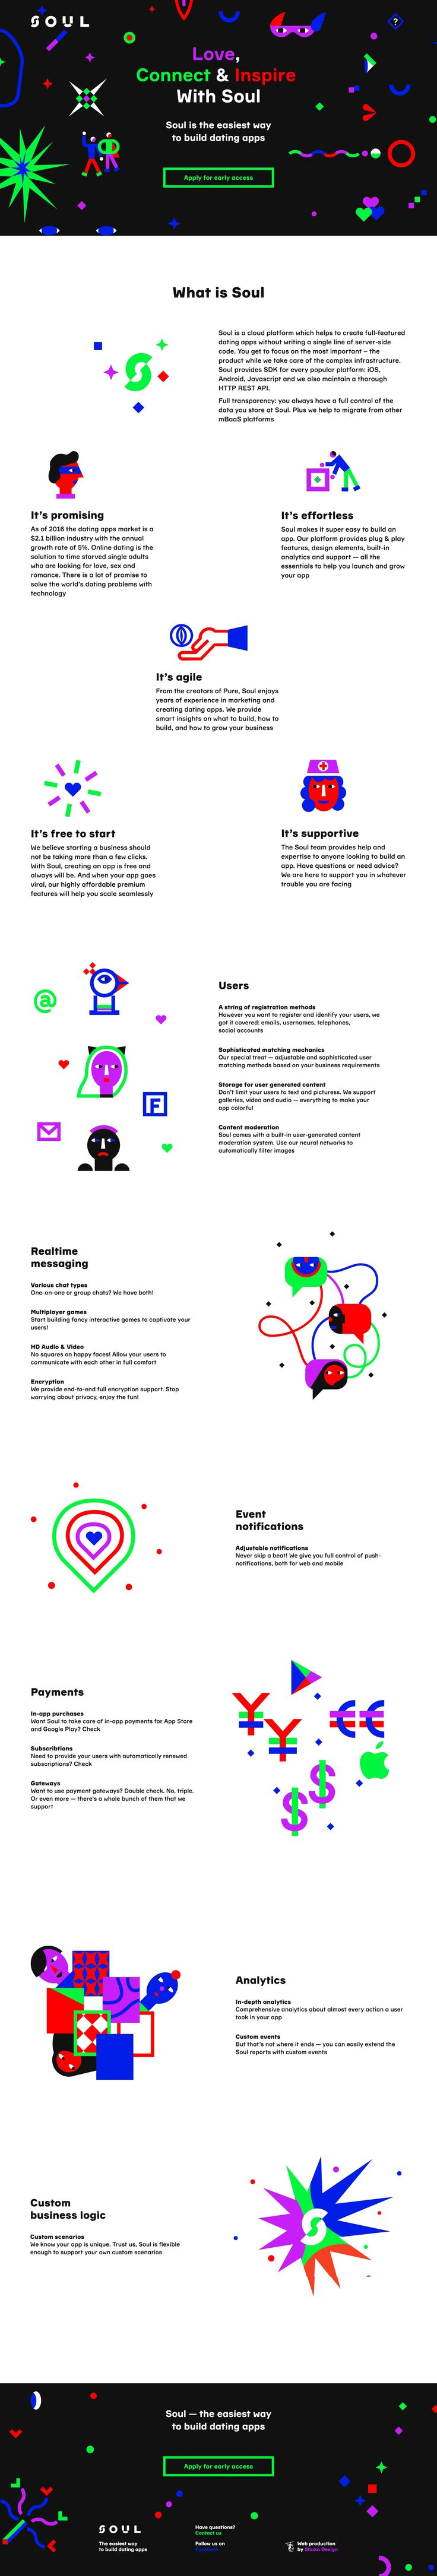 Long scrolling One Pager with colorful SVG illustrations for 'Soul' - a cloud platform which helps to create full-featured dating apps.